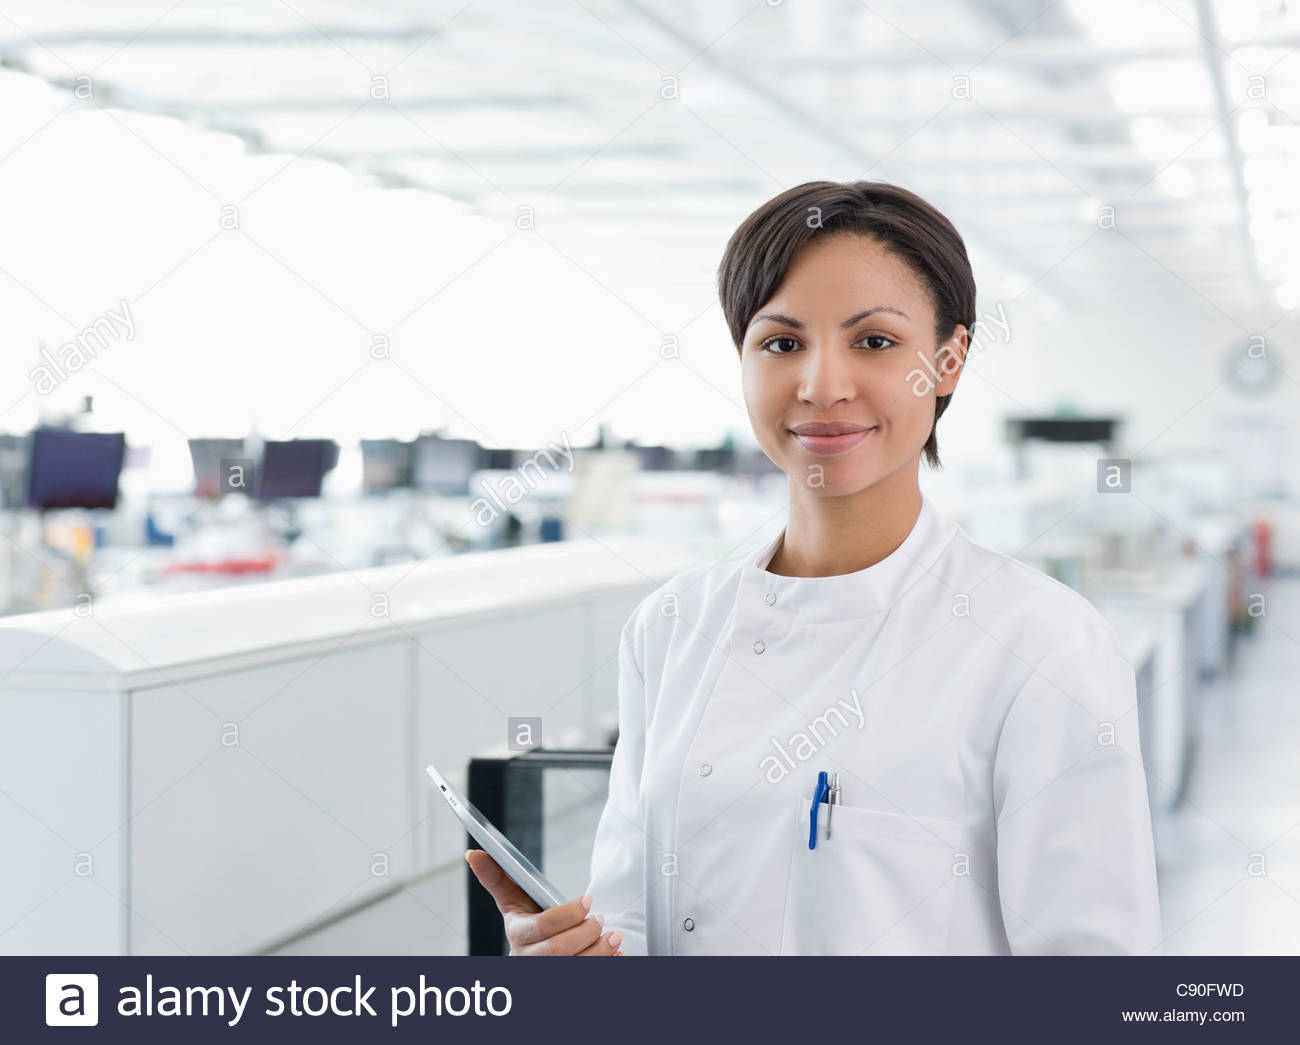 Scientist holding tablet computer in lab - Stock Image